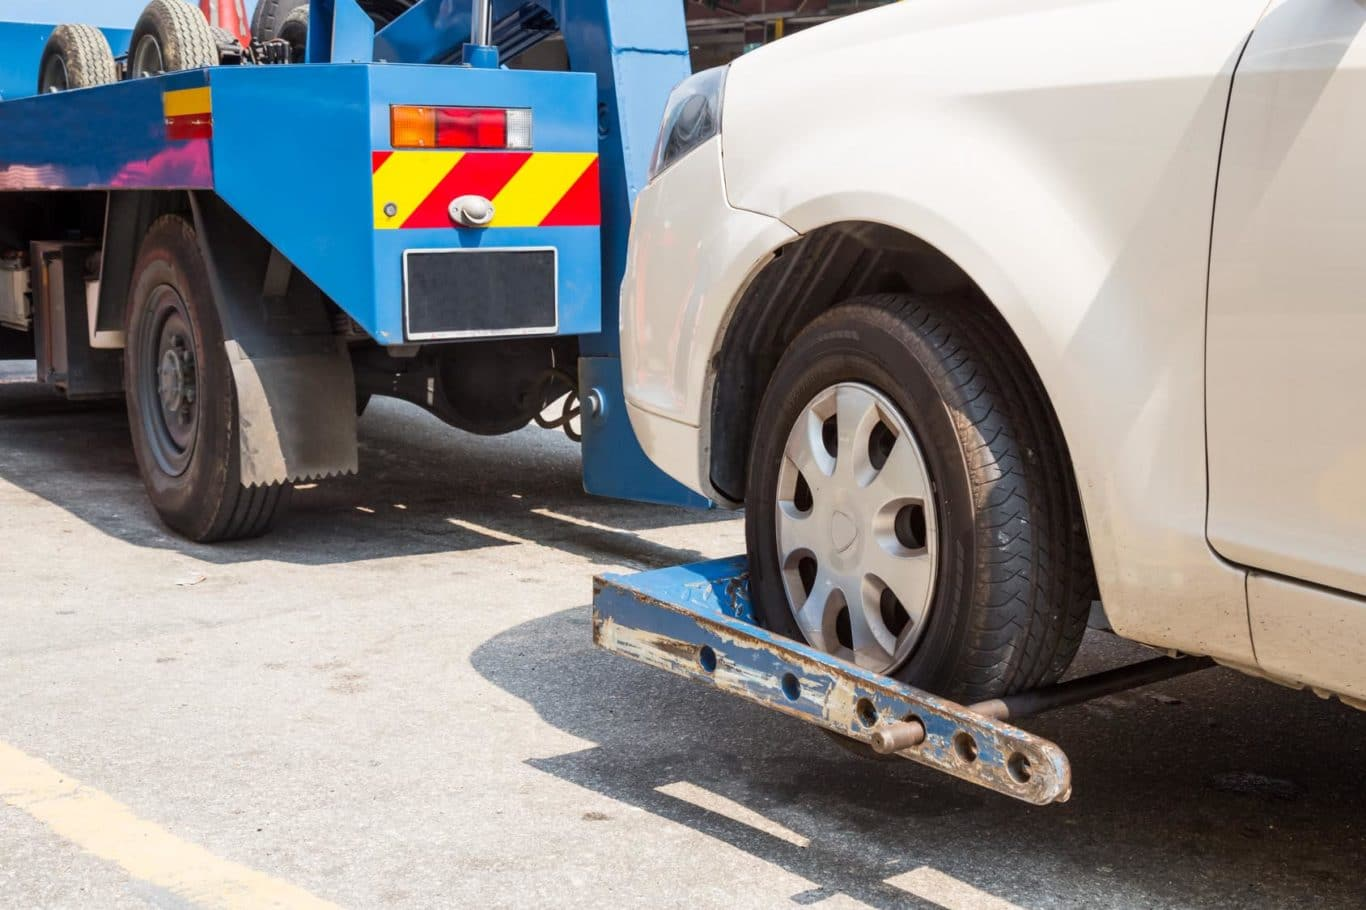 Skerries expert Car Towing services